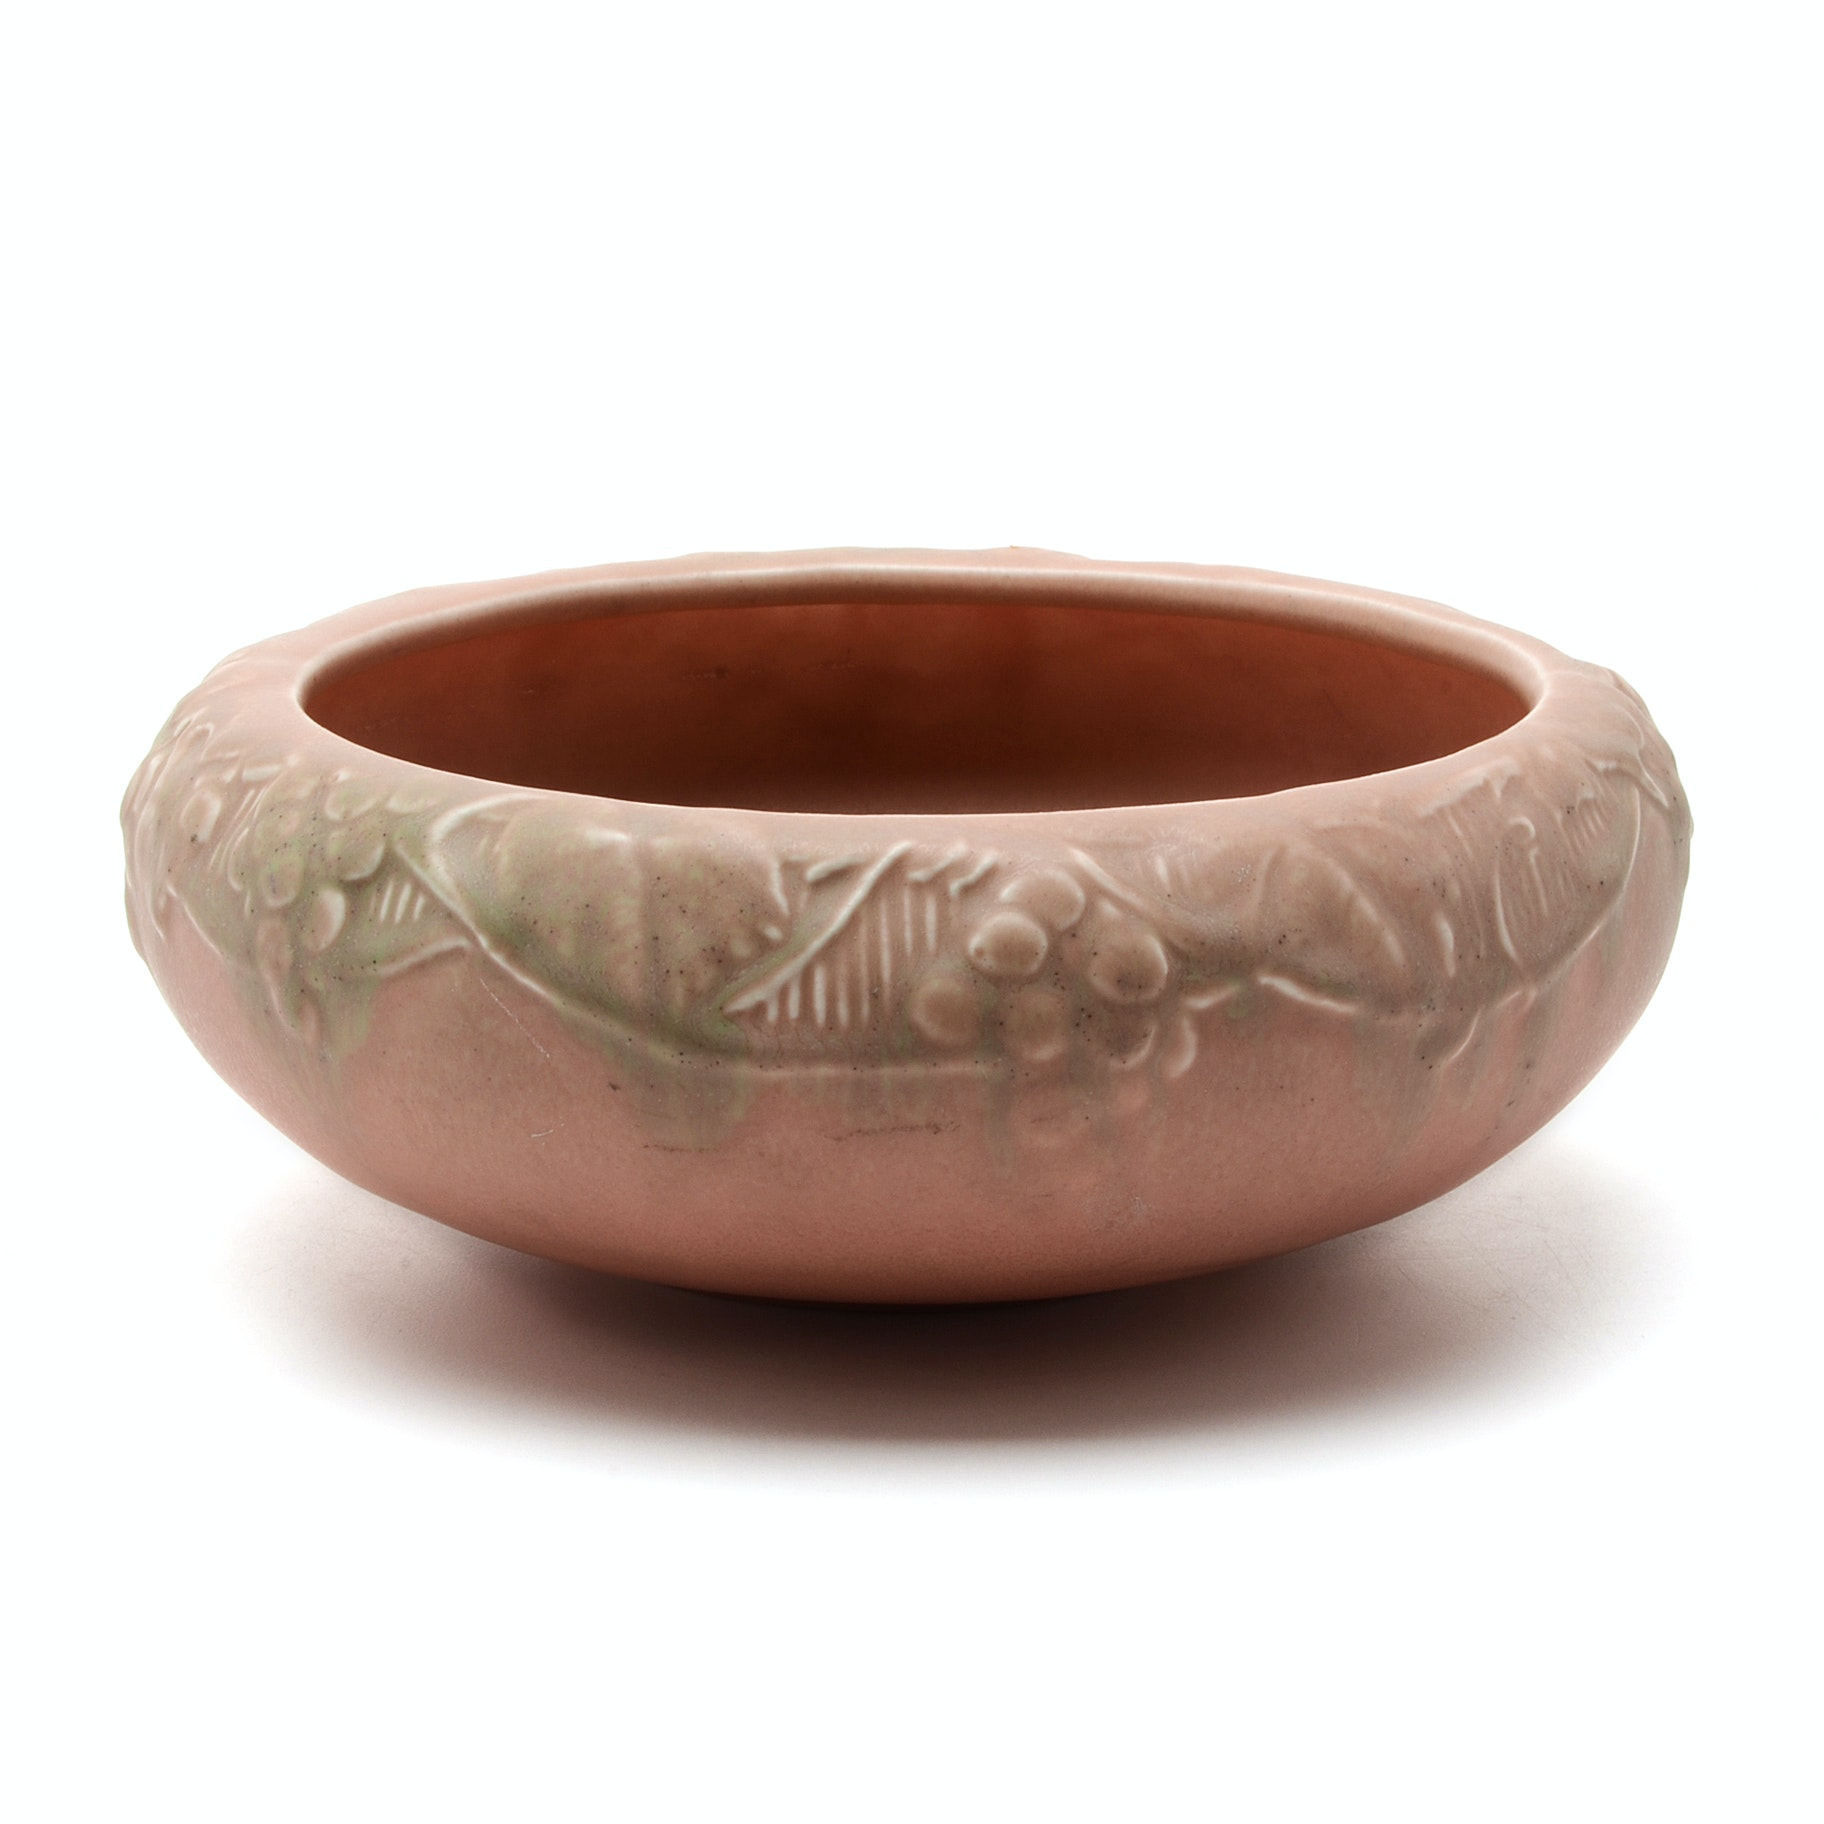 1927 Rookwood Console Bowl with Grape Motif